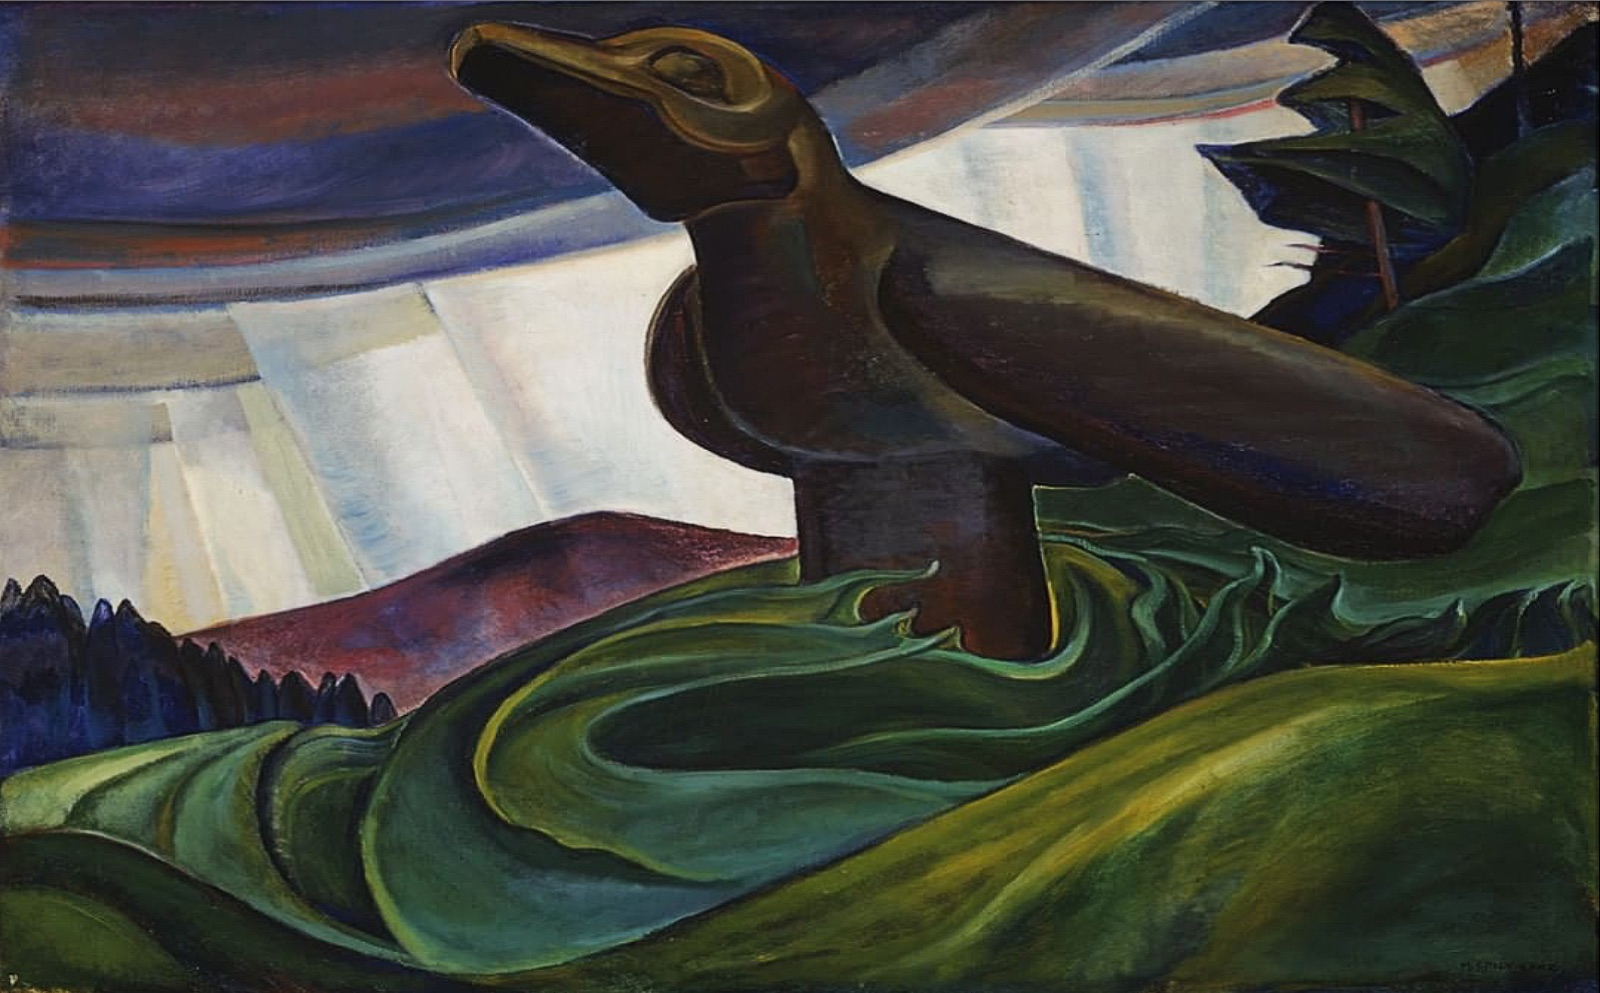 Big Raven, by Emily Carr